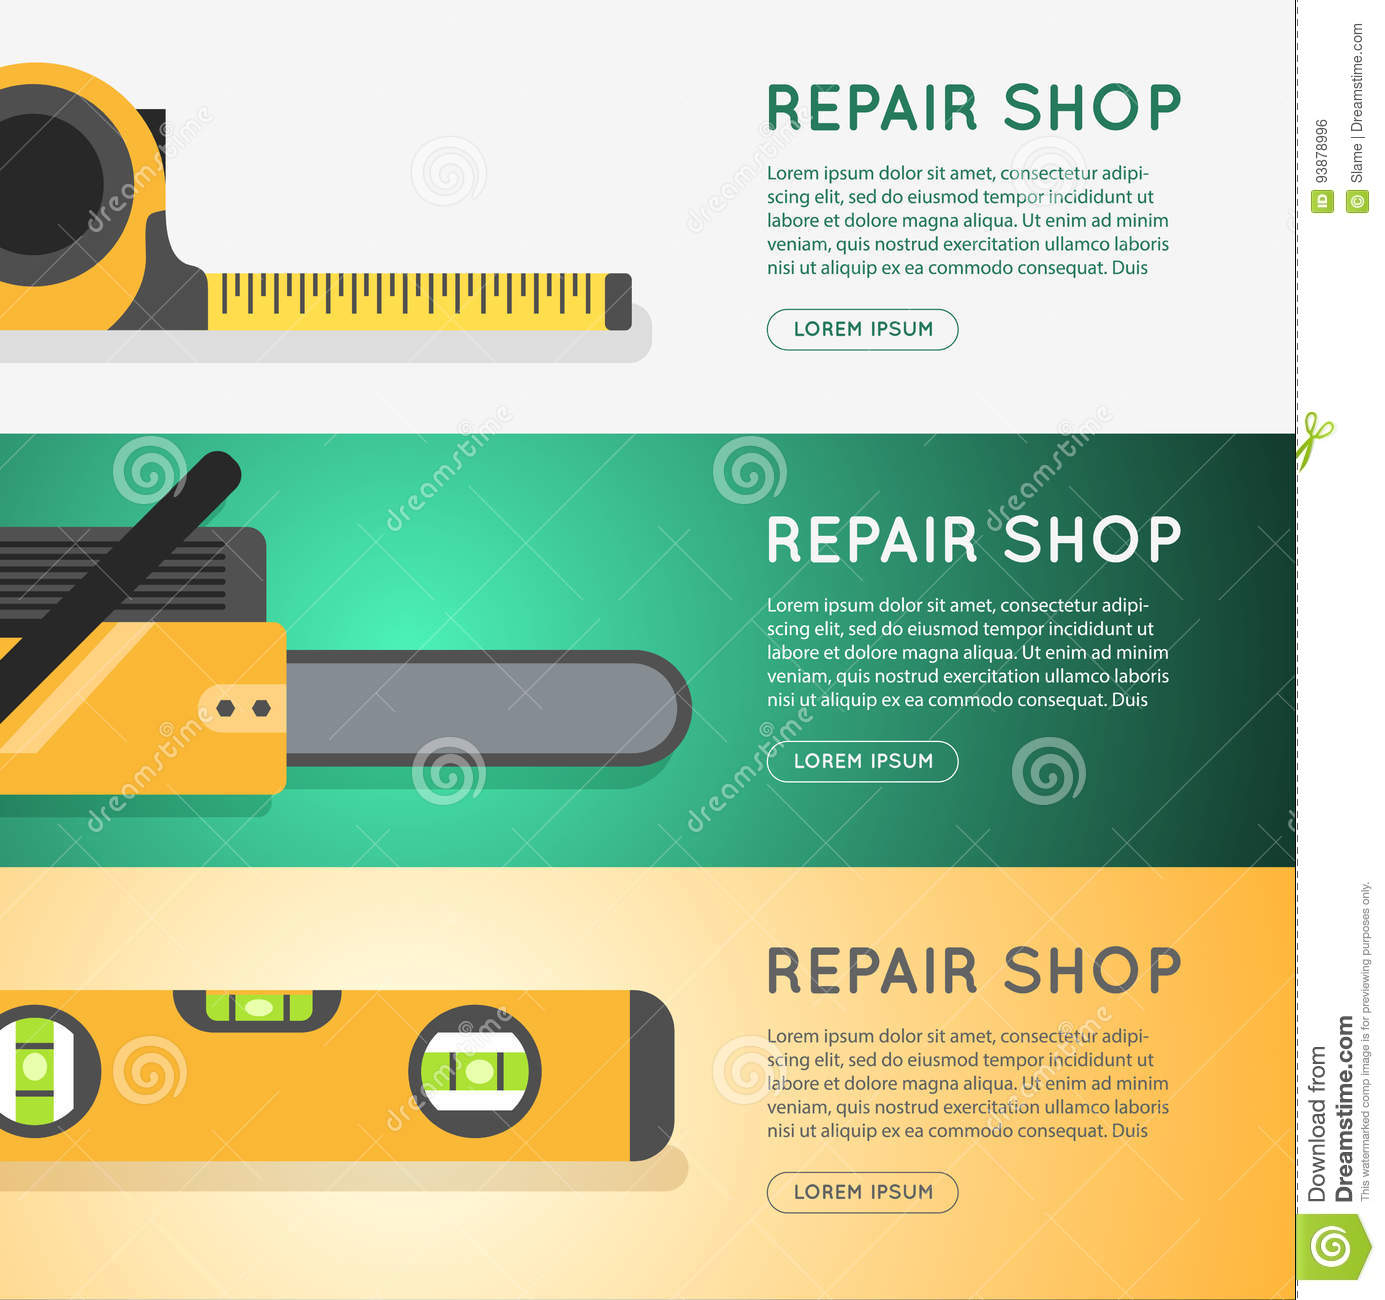 Diy Store Online Banner Design  Stock Illustration - Illustration of